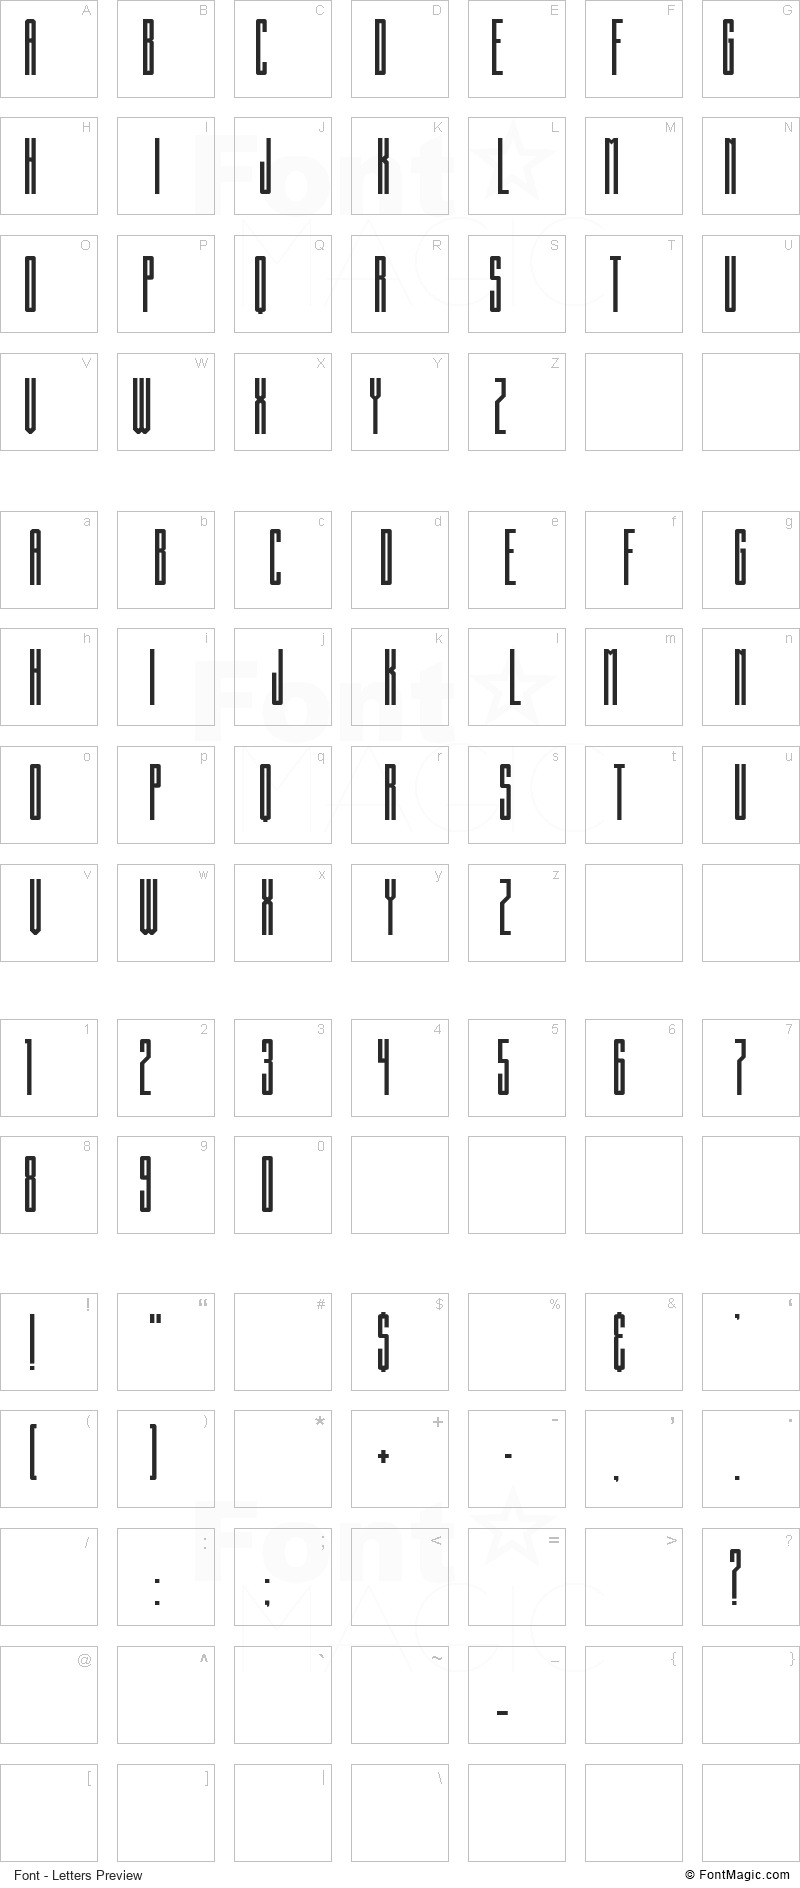 Building State Empire Font - All Latters Preview Chart